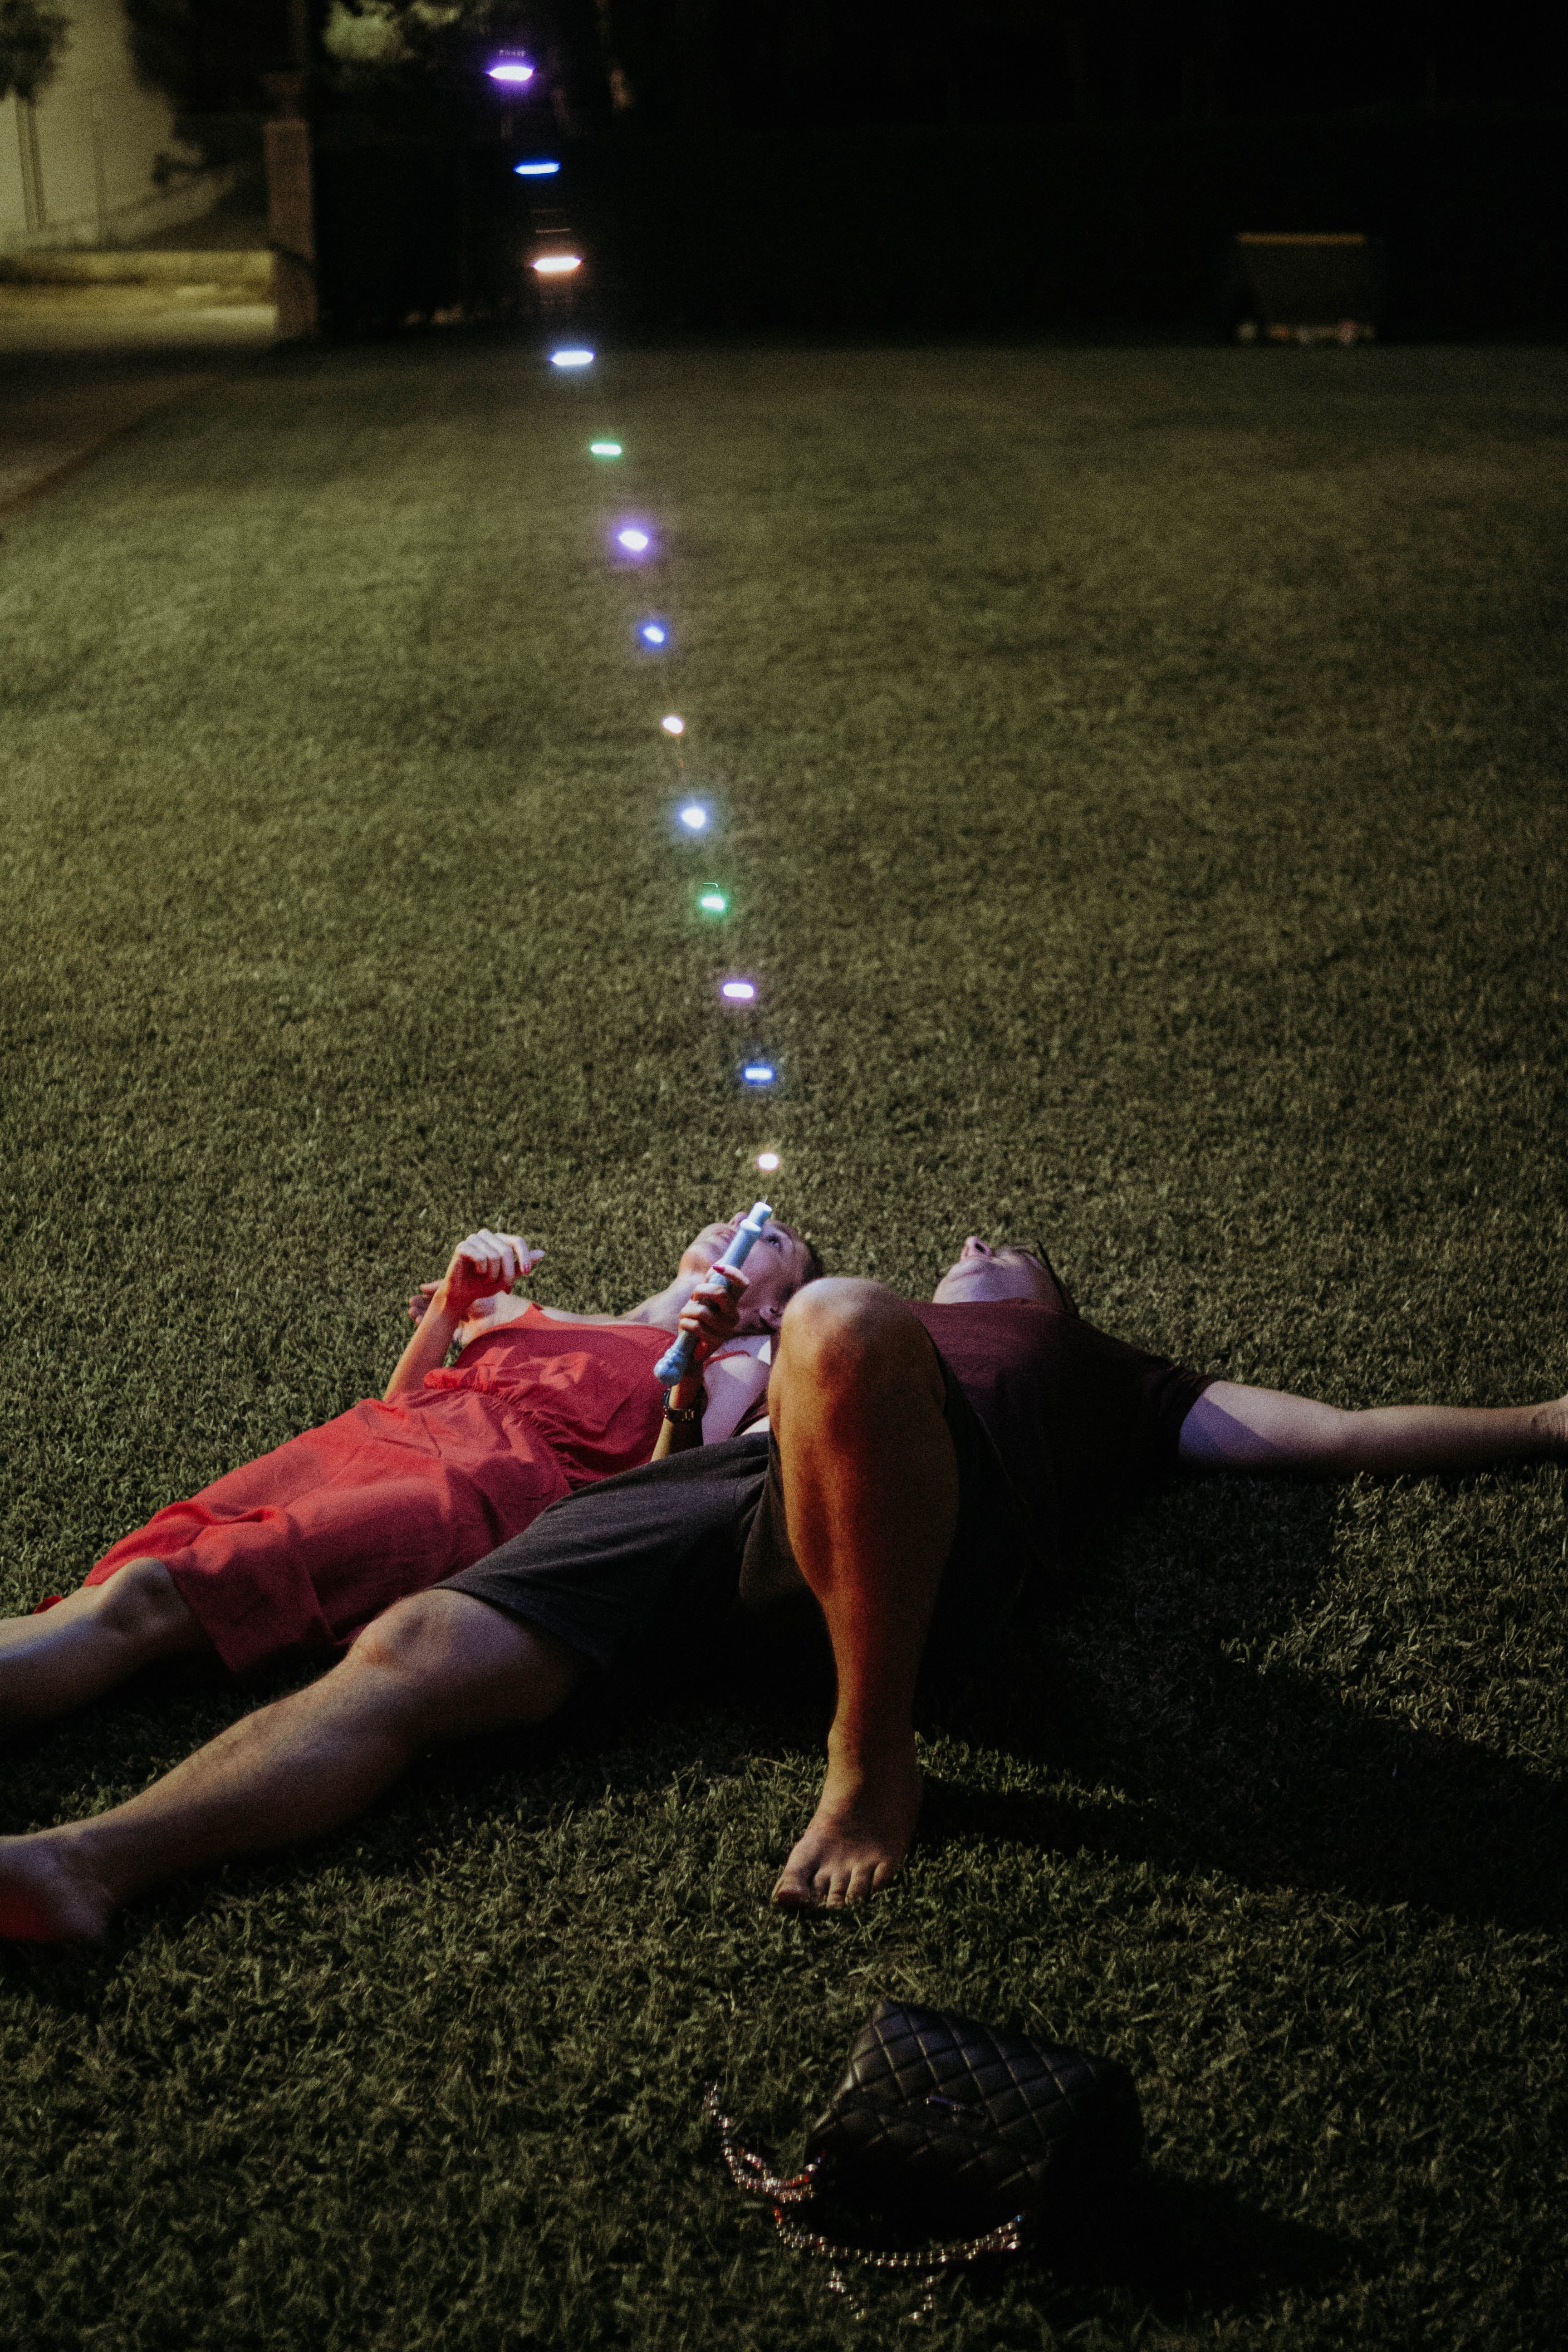 Man and Woman Lying on Green Grass Holding String Lights